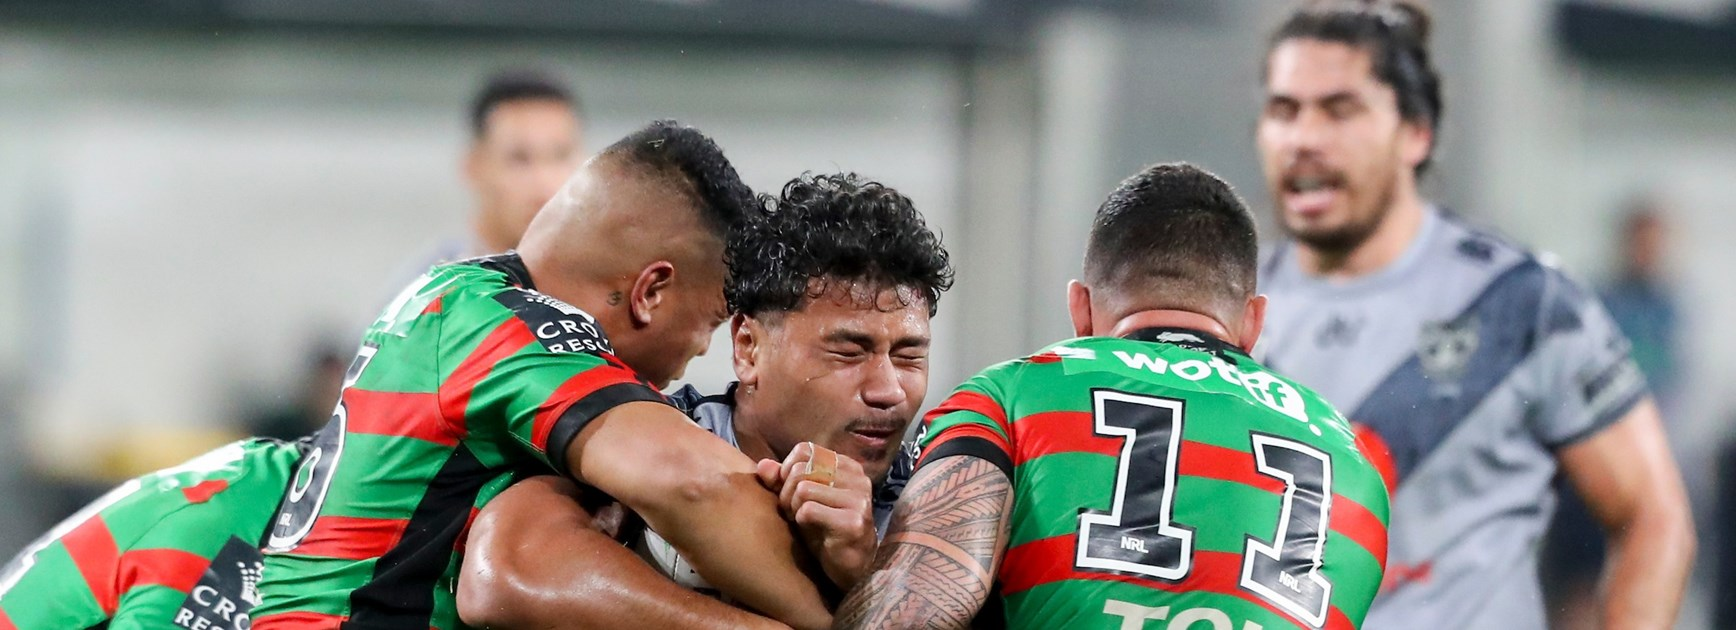 Mitchell, Walker lead Rabbitohs to big win over Warriors